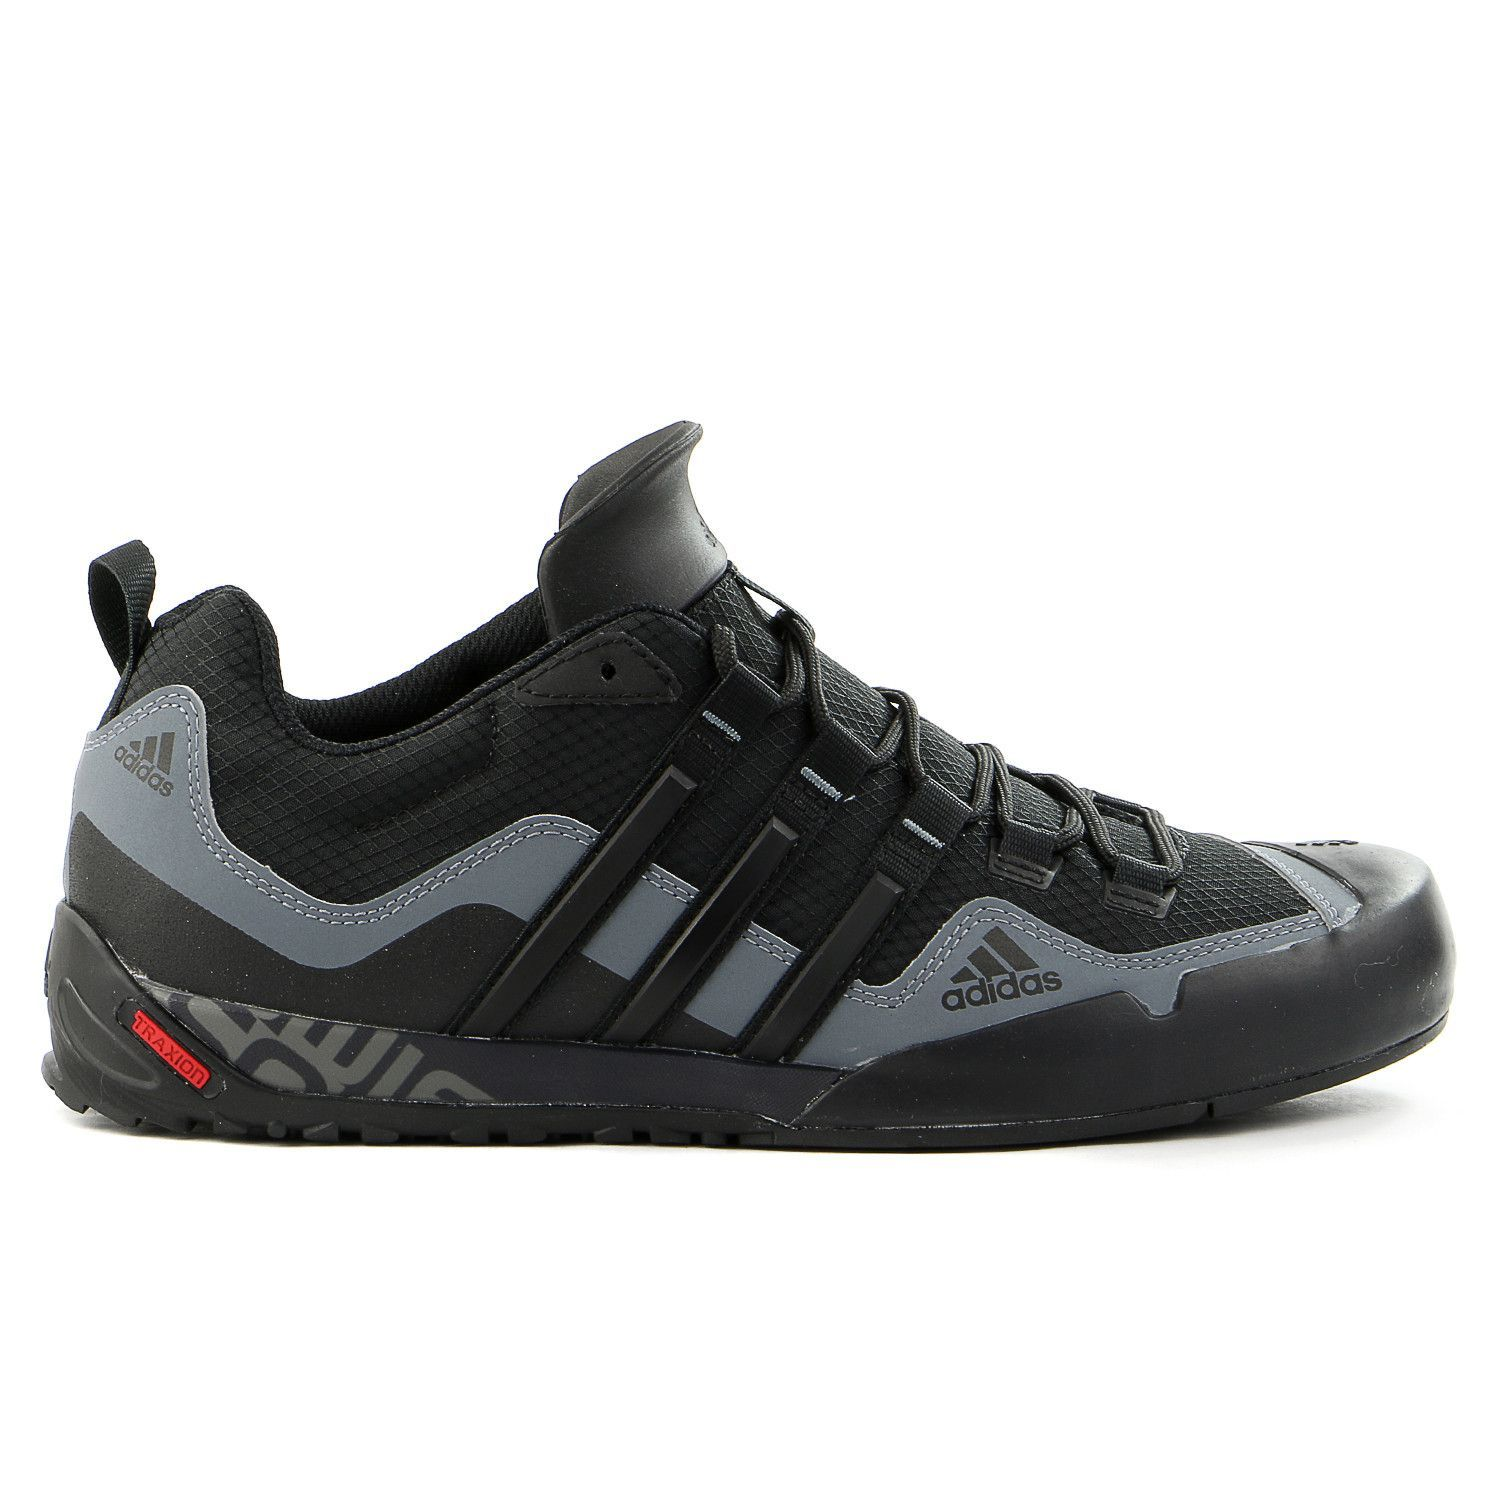 Adidas Outdoor Terrex Swift Solo Hiking Sneaker Trail Shoe Mens